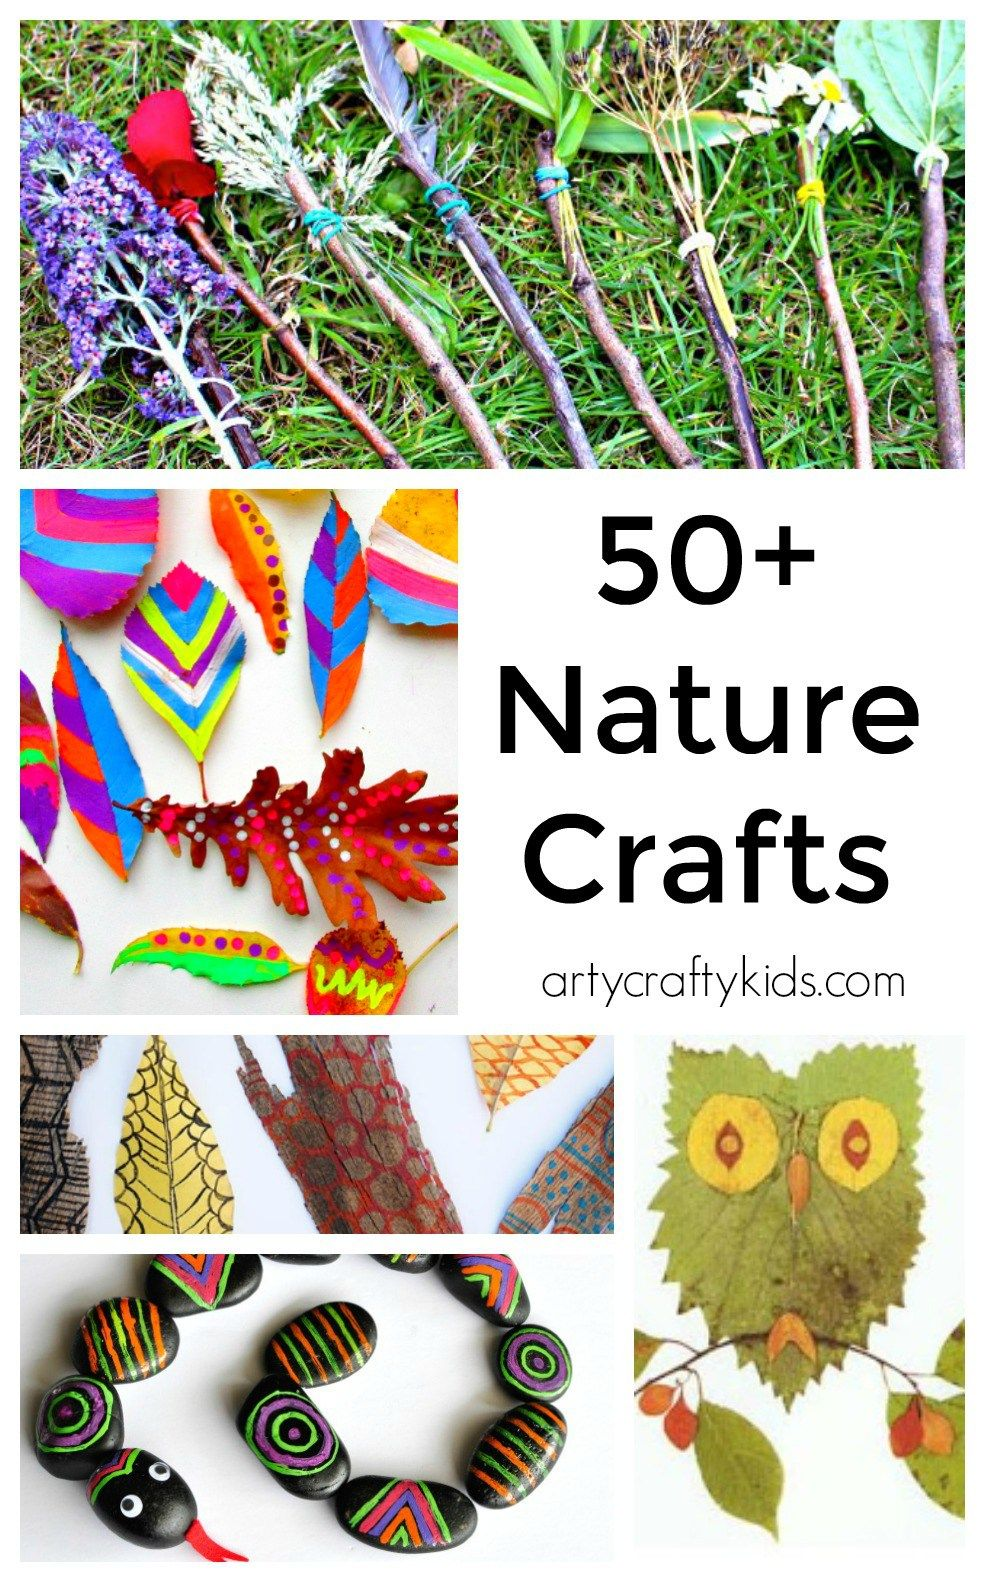 50 Nature Crafts for Kids -   18 school crafts show